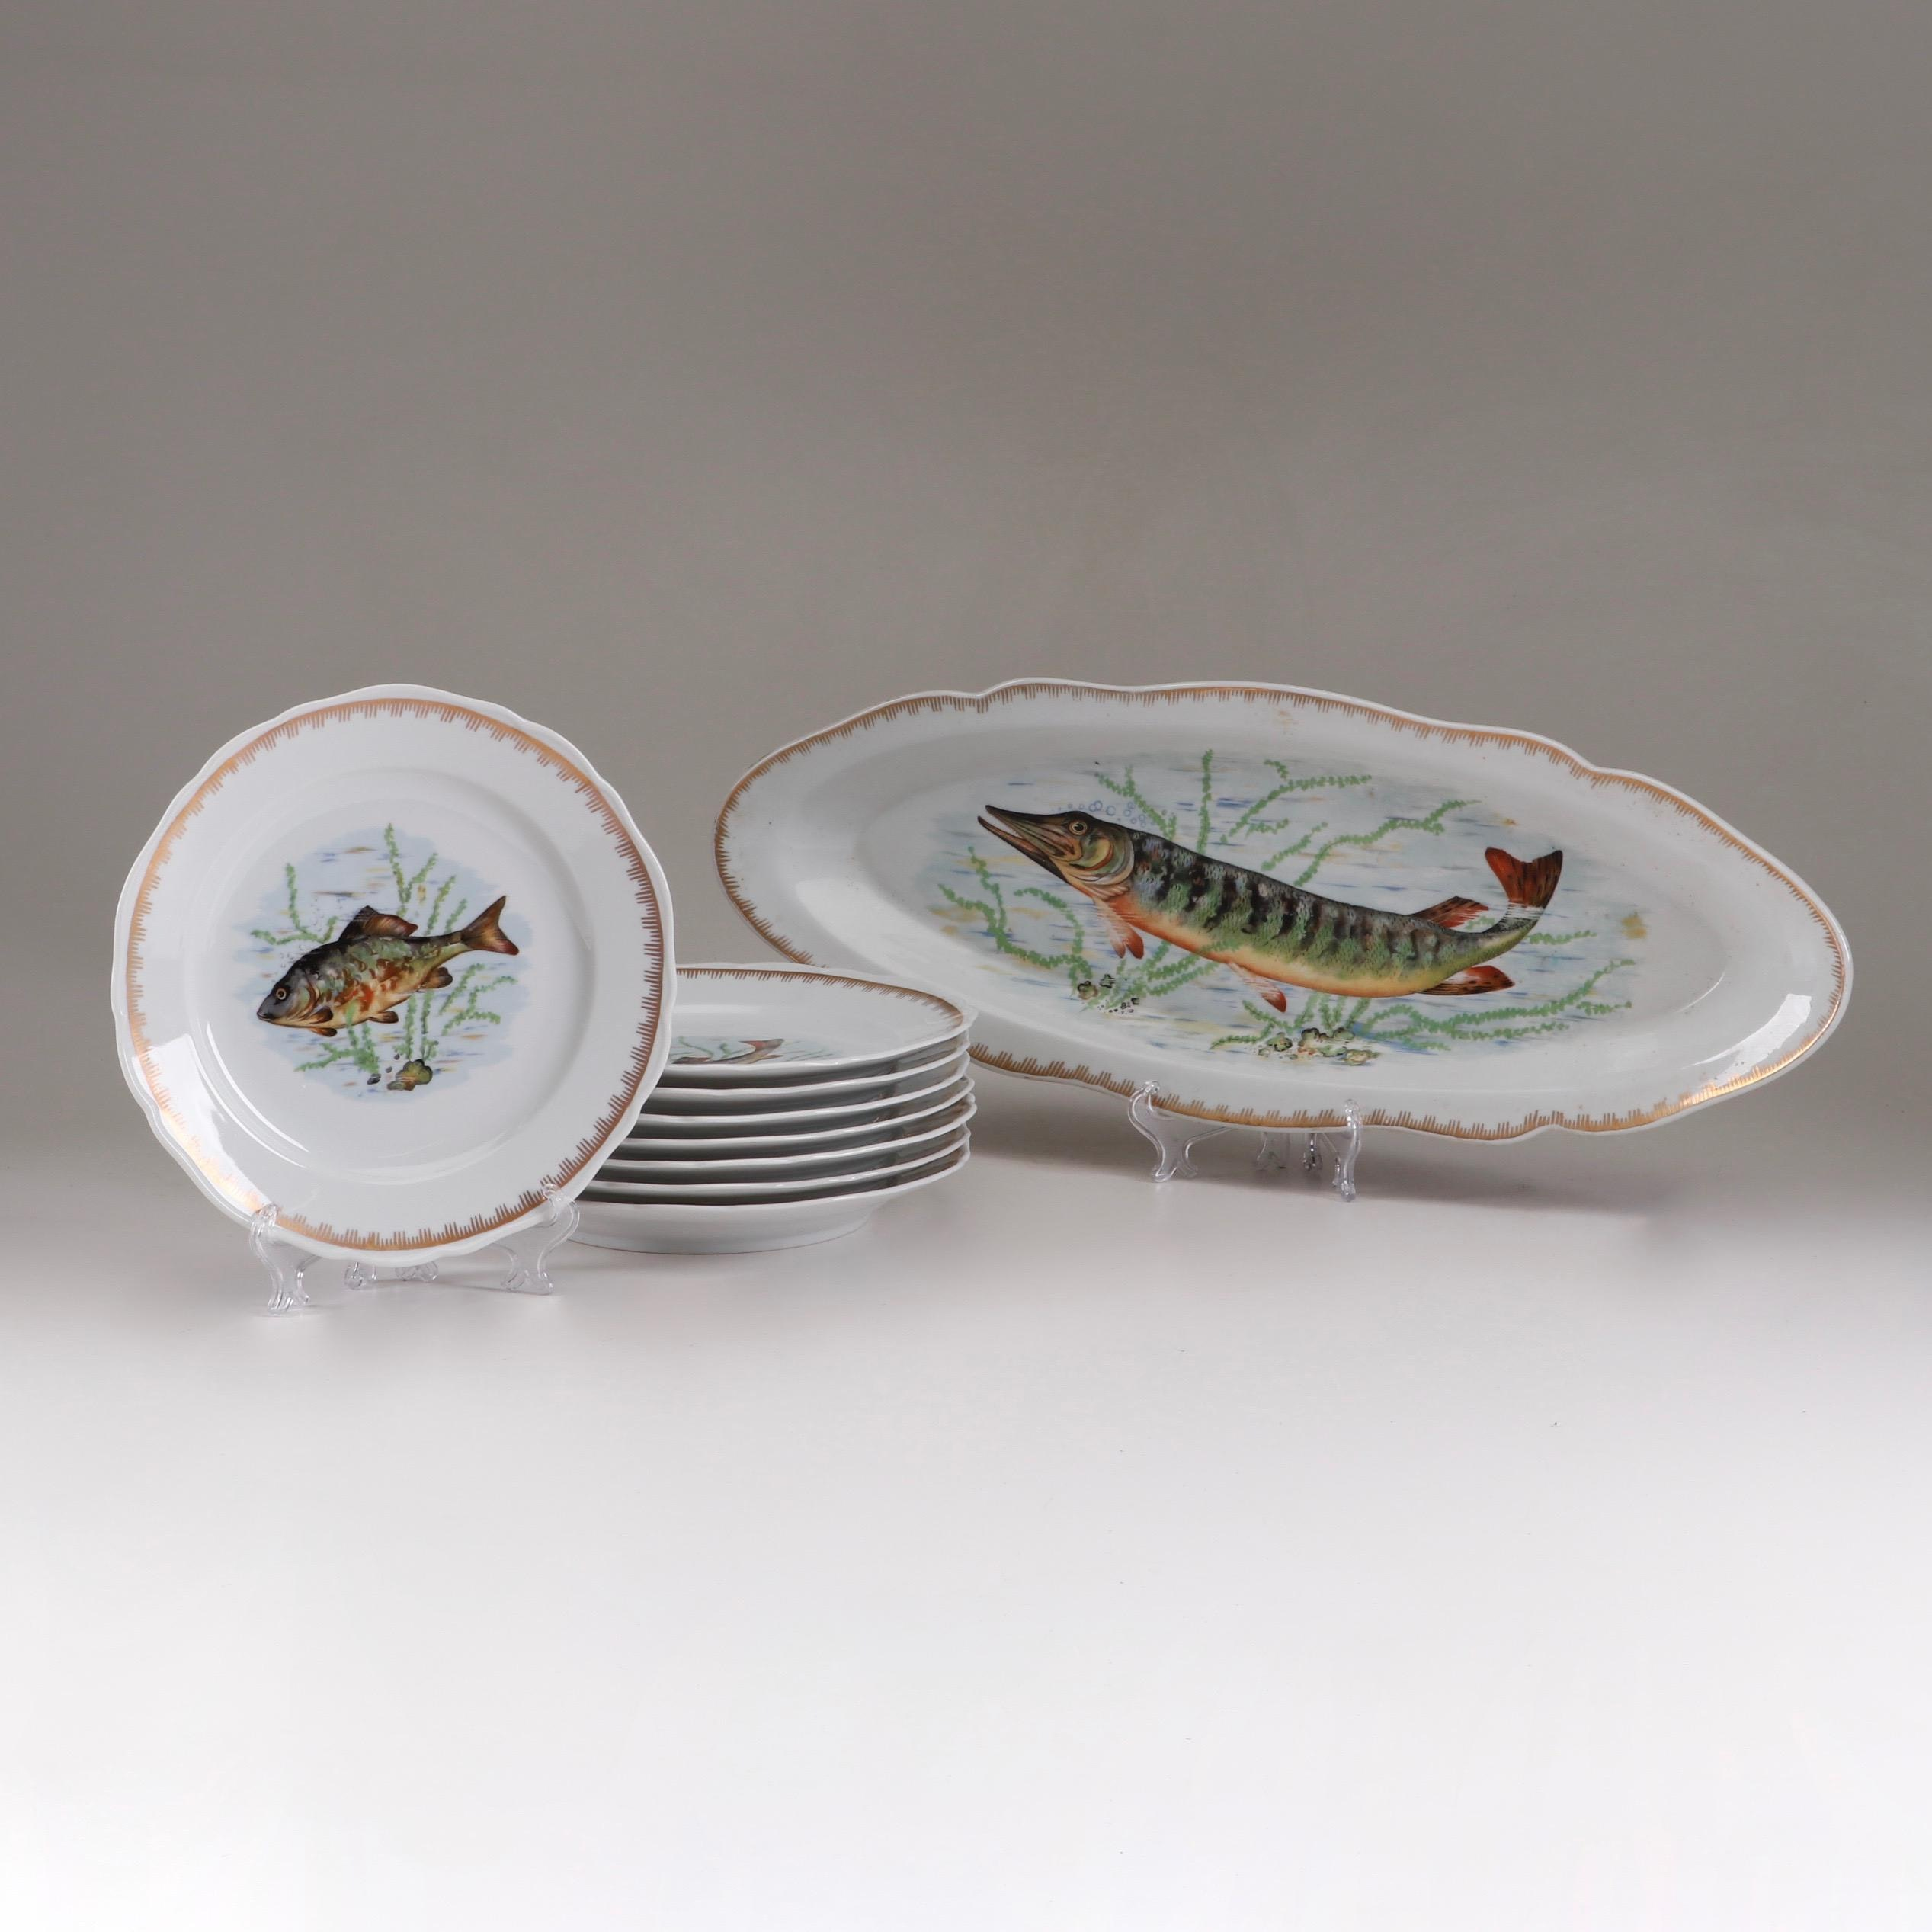 Hand-Painted Limoges Porcelain Fish Plates and Platter